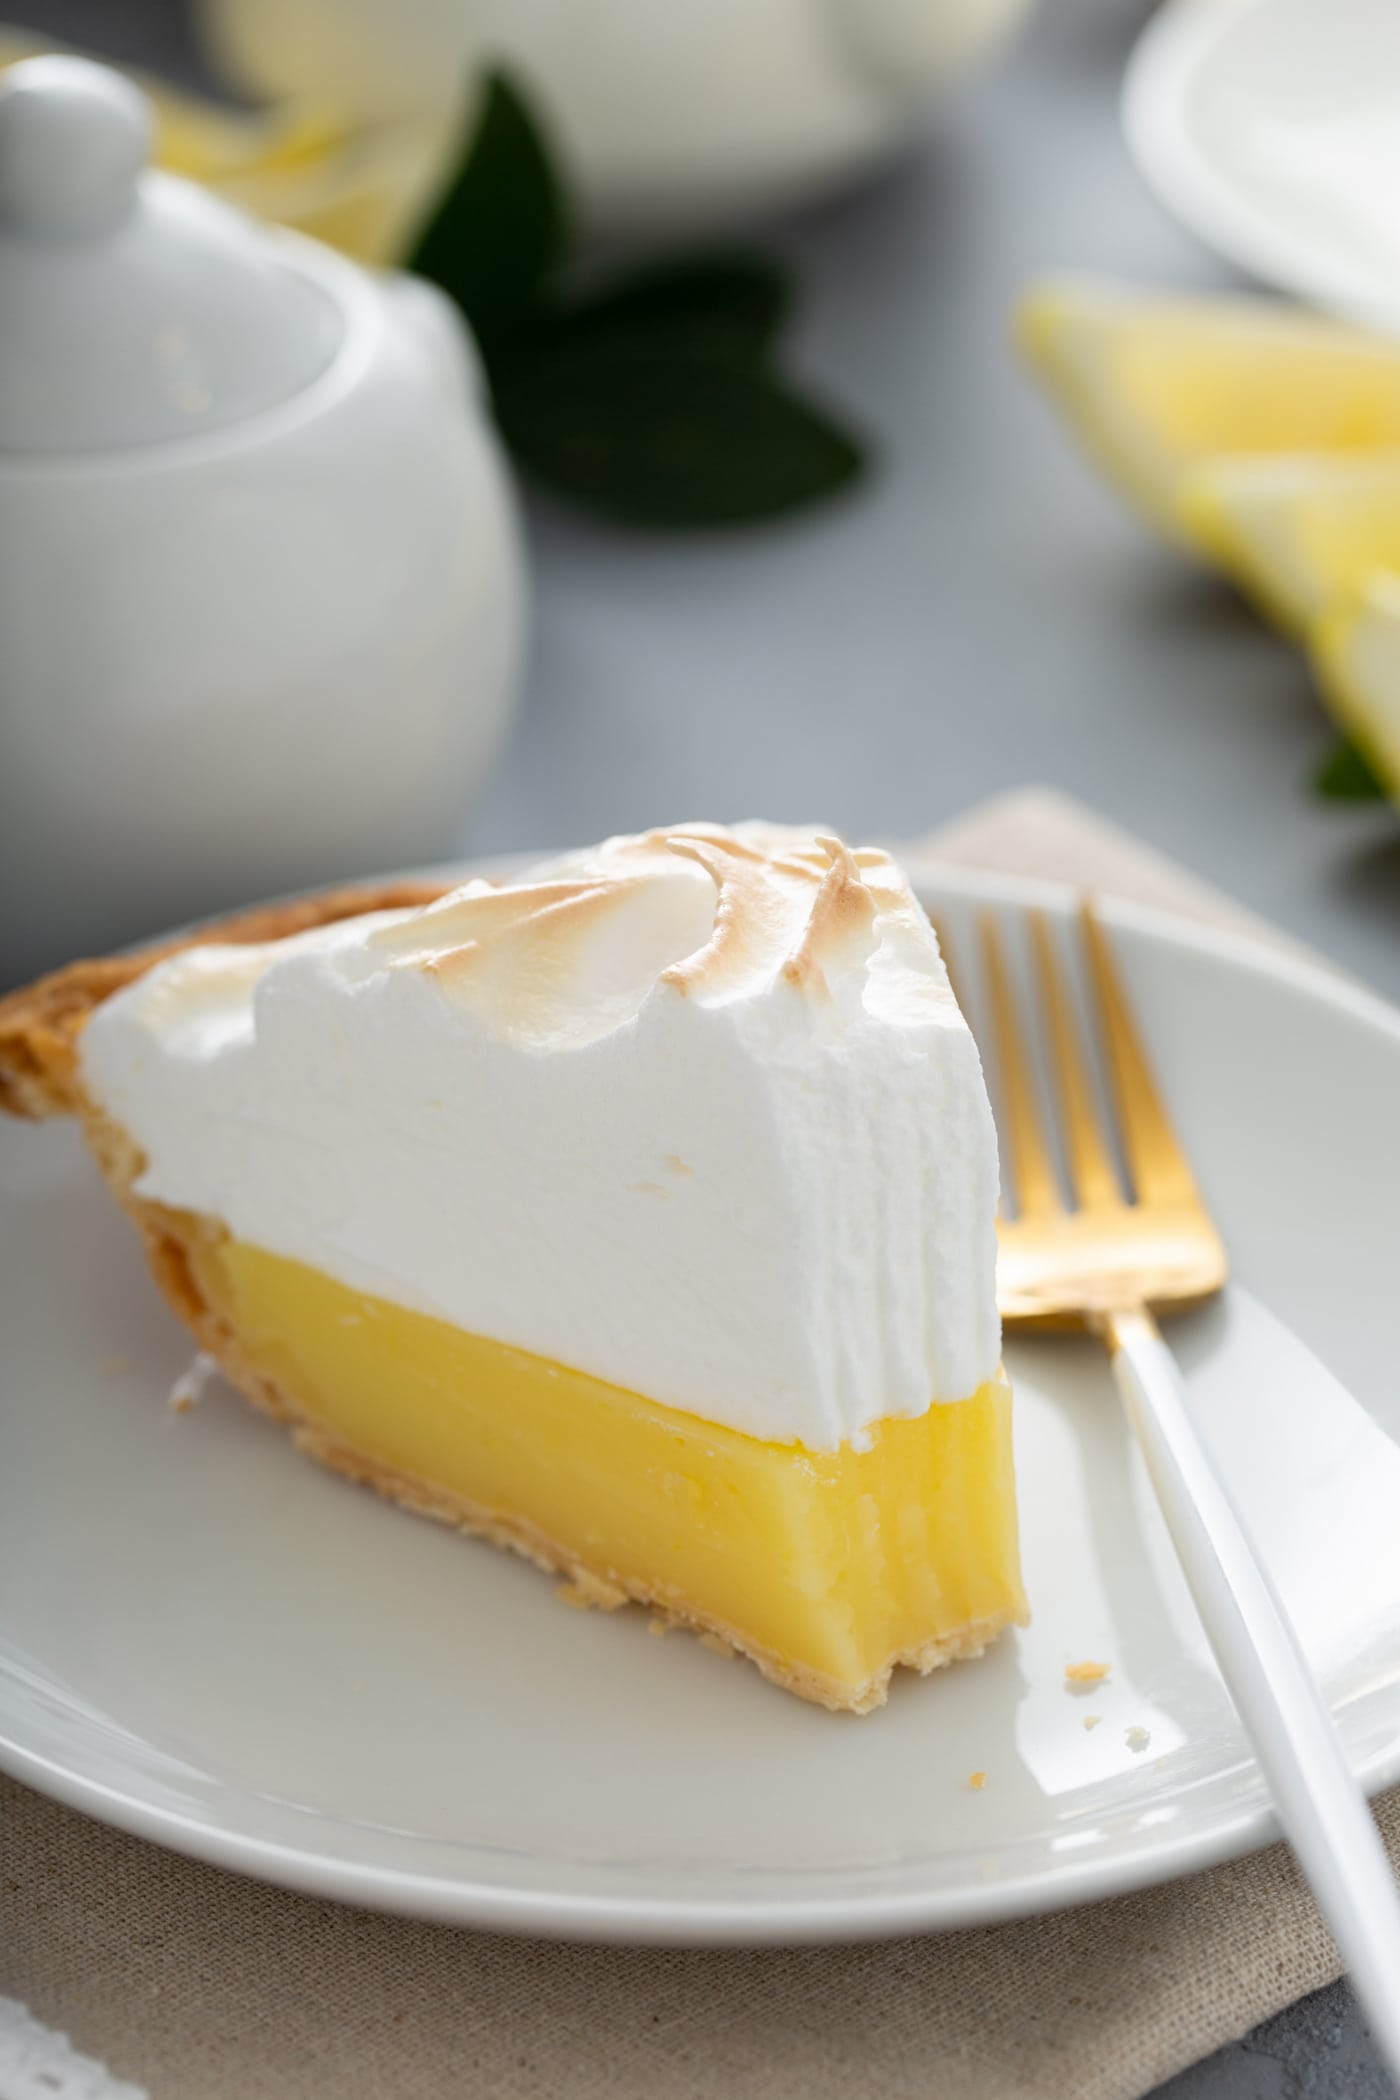 A slice of lemon meringue pie on a white dessert plate. A fork is next to the pie, and one bite has been taken from the slice.